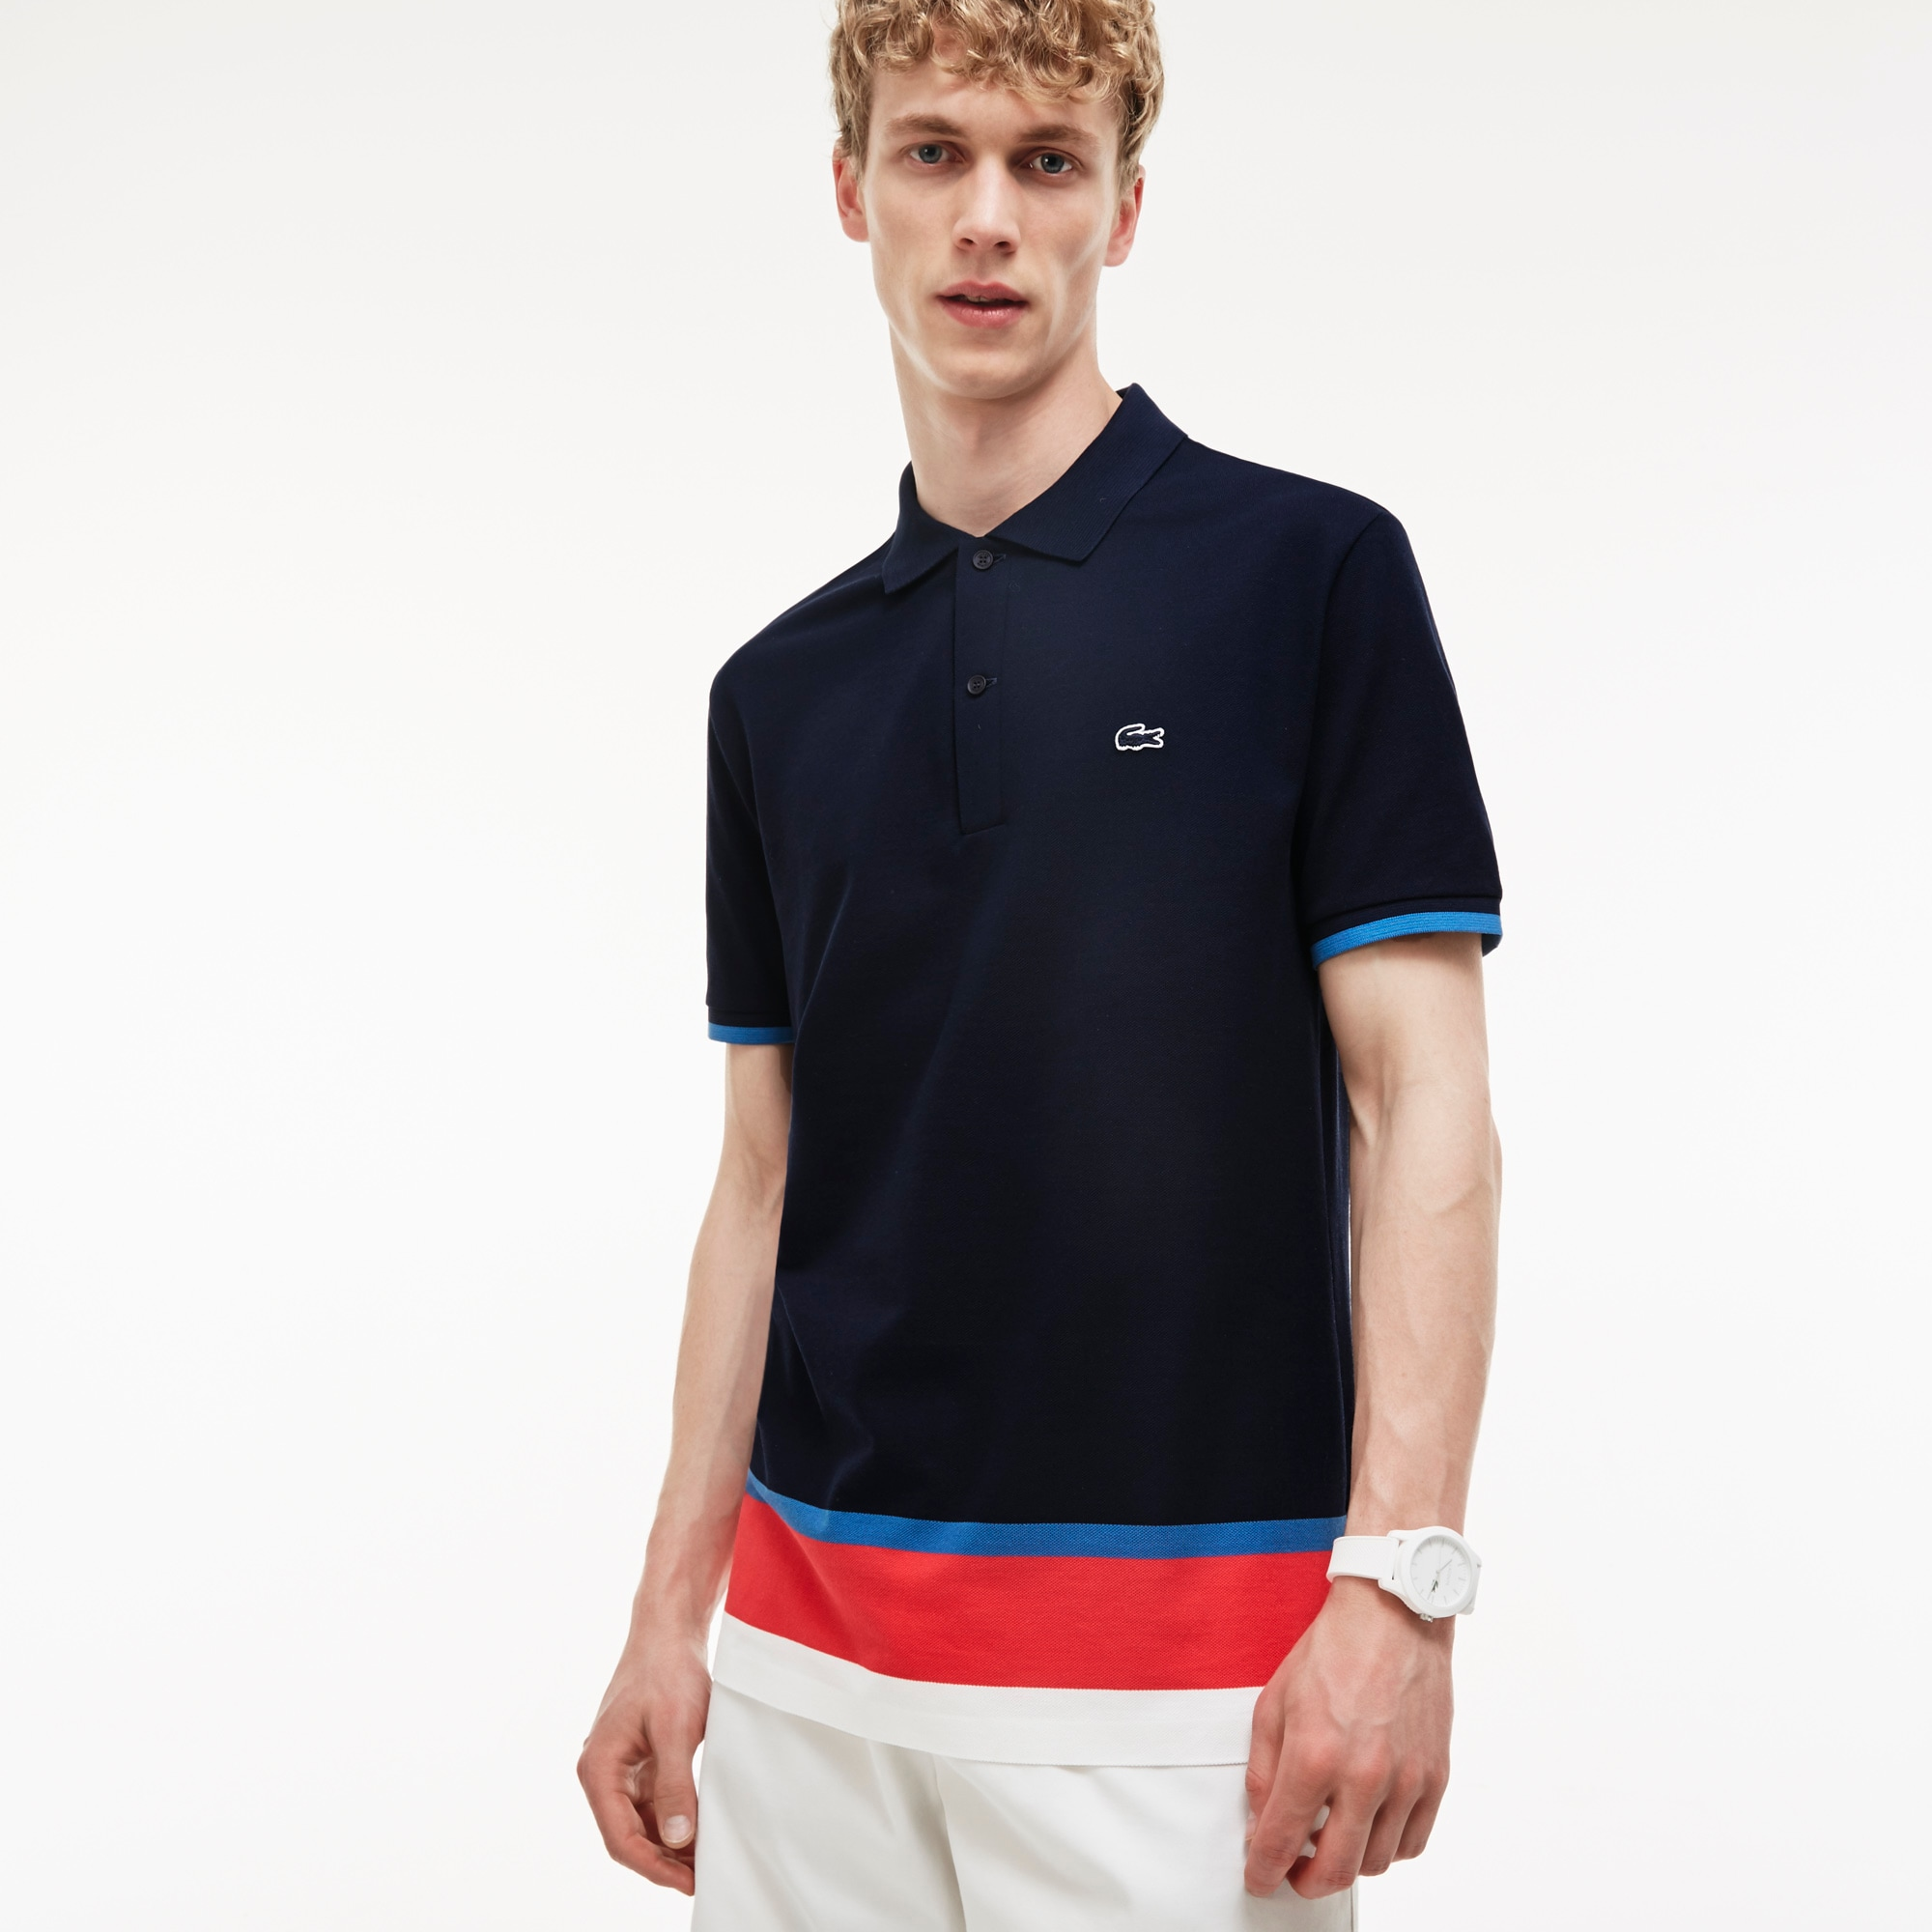 Men's Slim Fit Petit Piqué Colorblock Band Polo Shirt